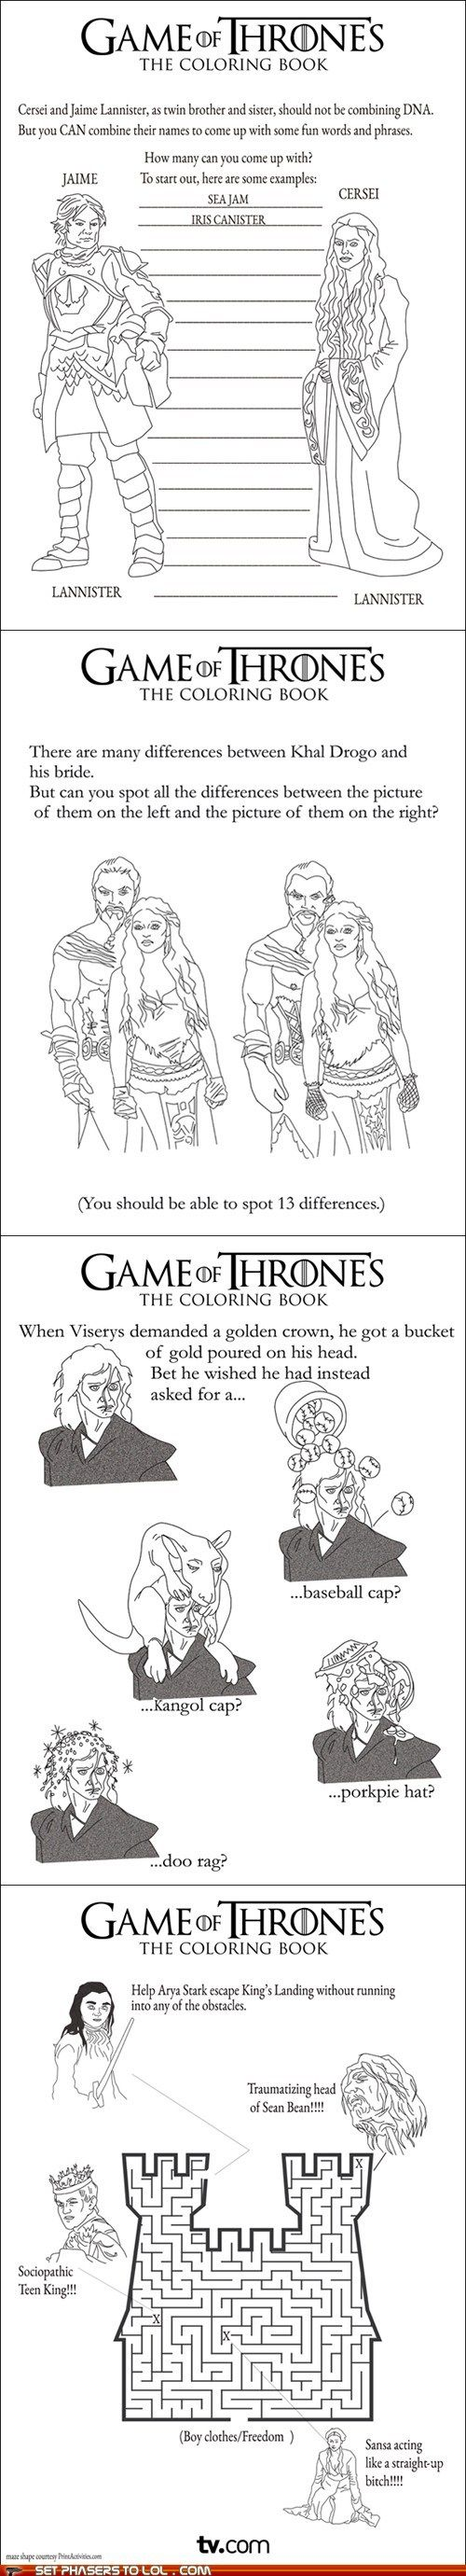 oh yes, perfect for the kids.: Awesome Activities, Games Of Thrones, Thrones Color, Thrones Activities, Activities Time, Activities Book, Game Of Thrones, Activity Books, Color Book